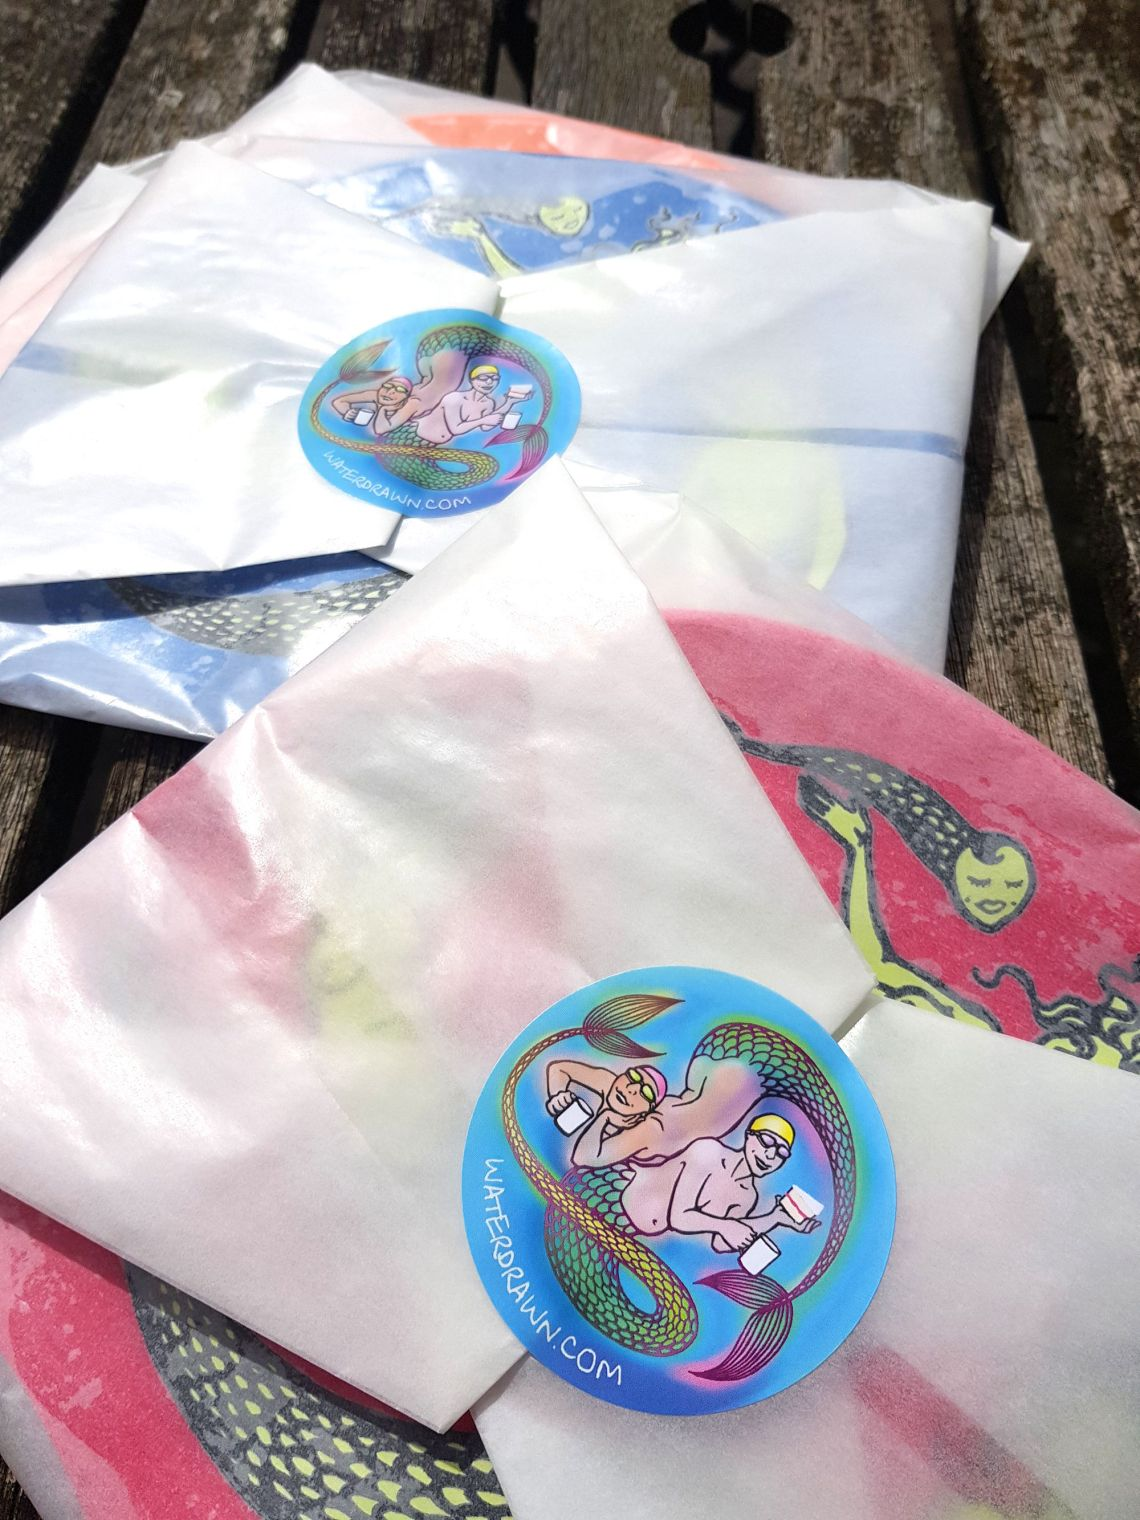 Wrapped hats with my lovely new mermaid stickers!